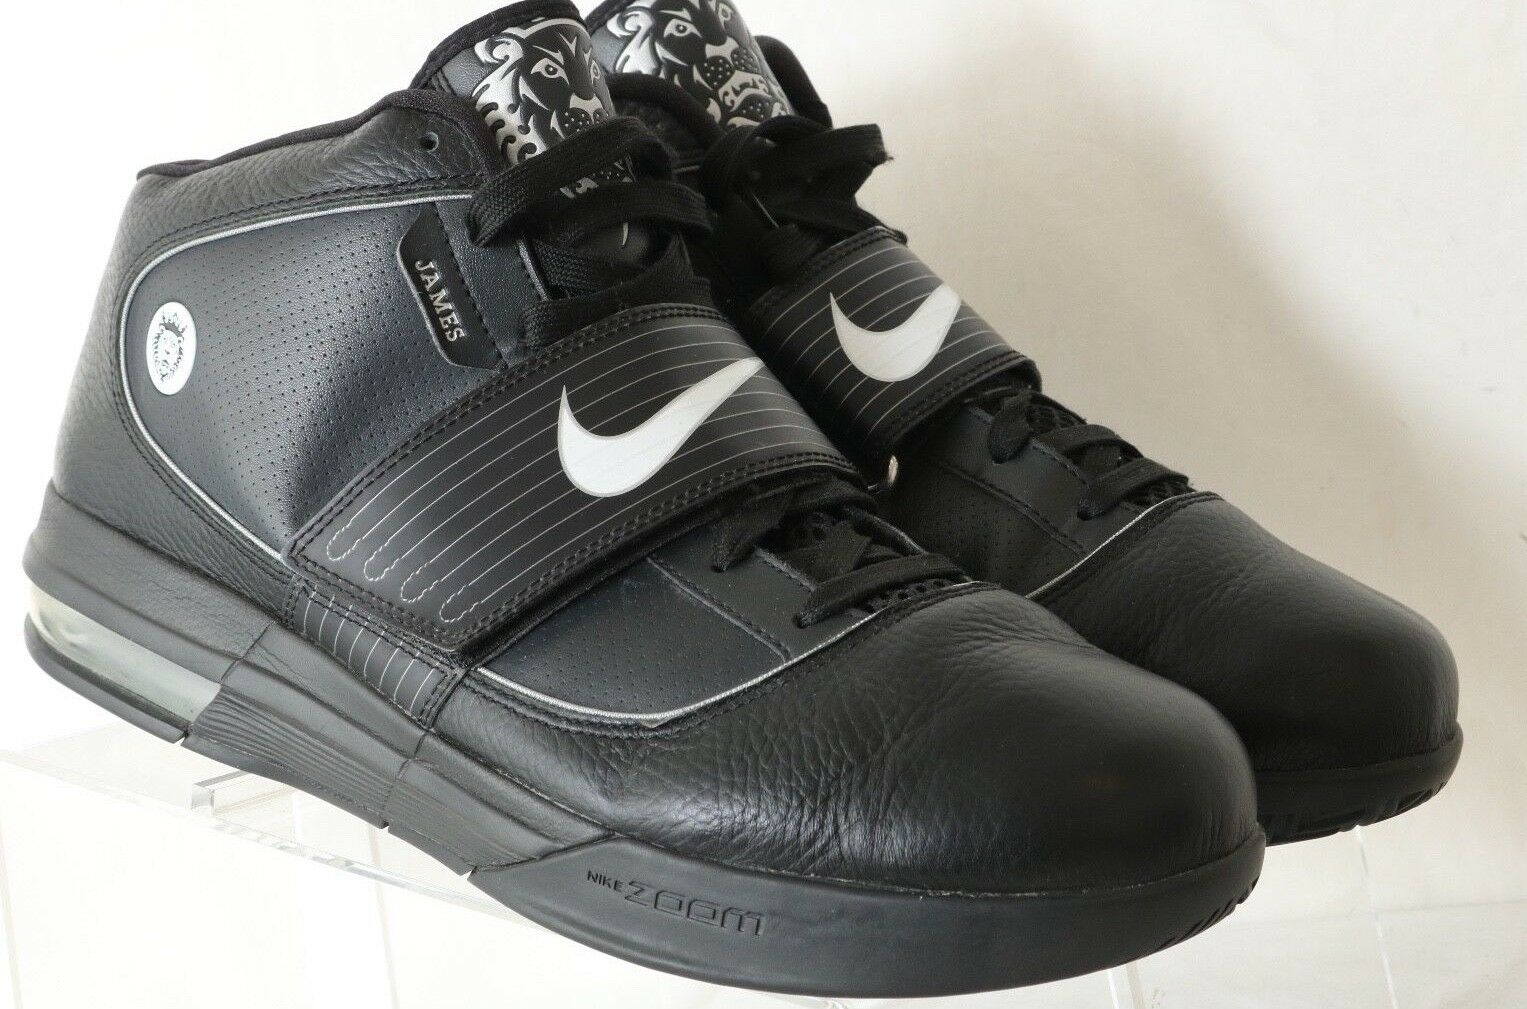 87ffd4f3562 ... denmark nike zoom witness soldier iv lebron james 407630 001 black  witness zoom high top mens